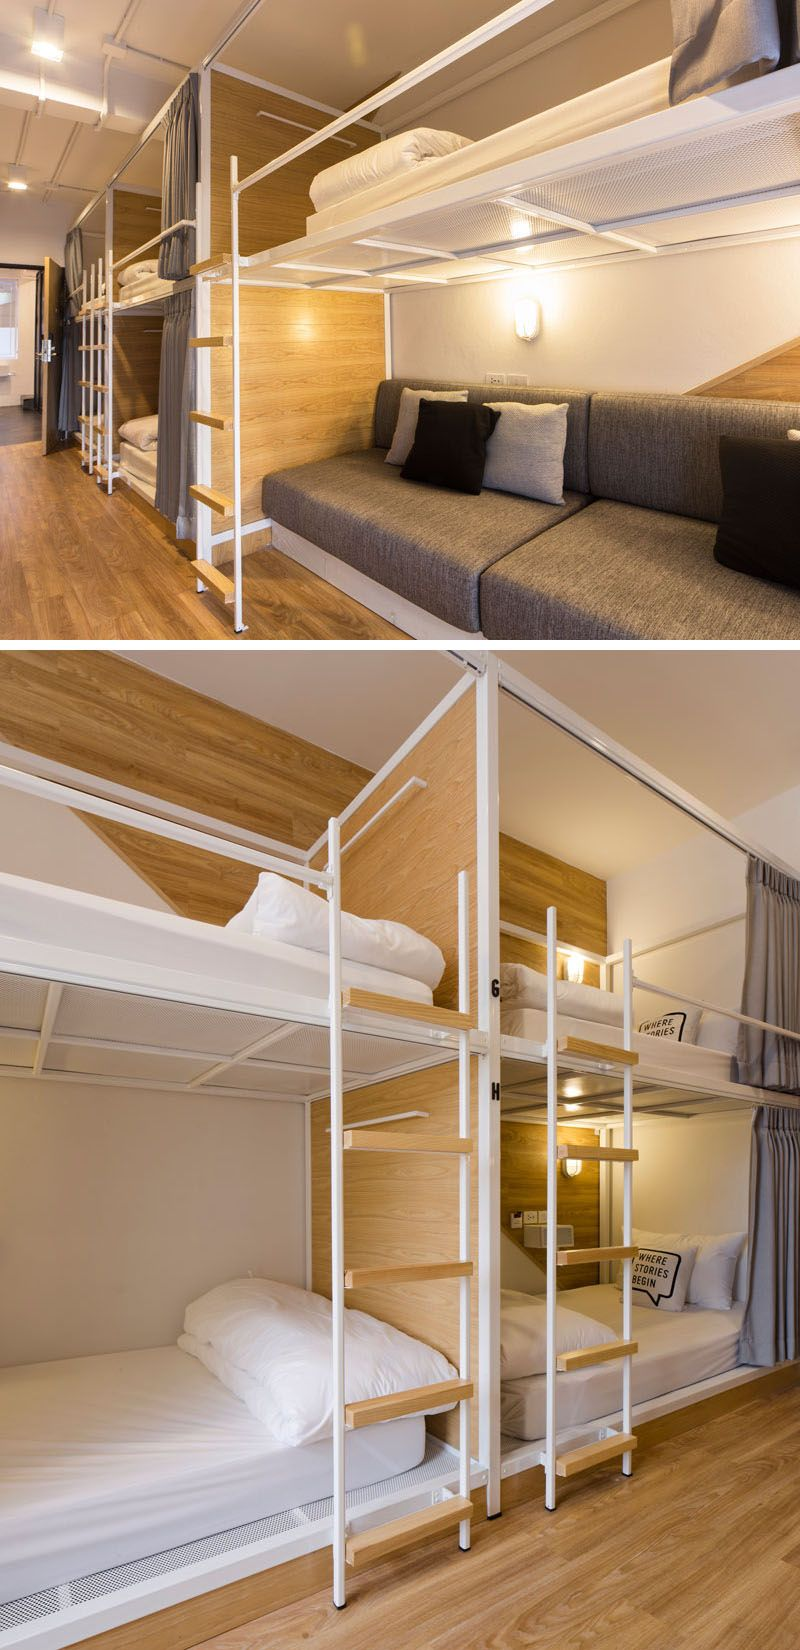 In This Modern Bangkok Hostel, The Dormitory Rooms Have Been Set Up With Bunk  Beds